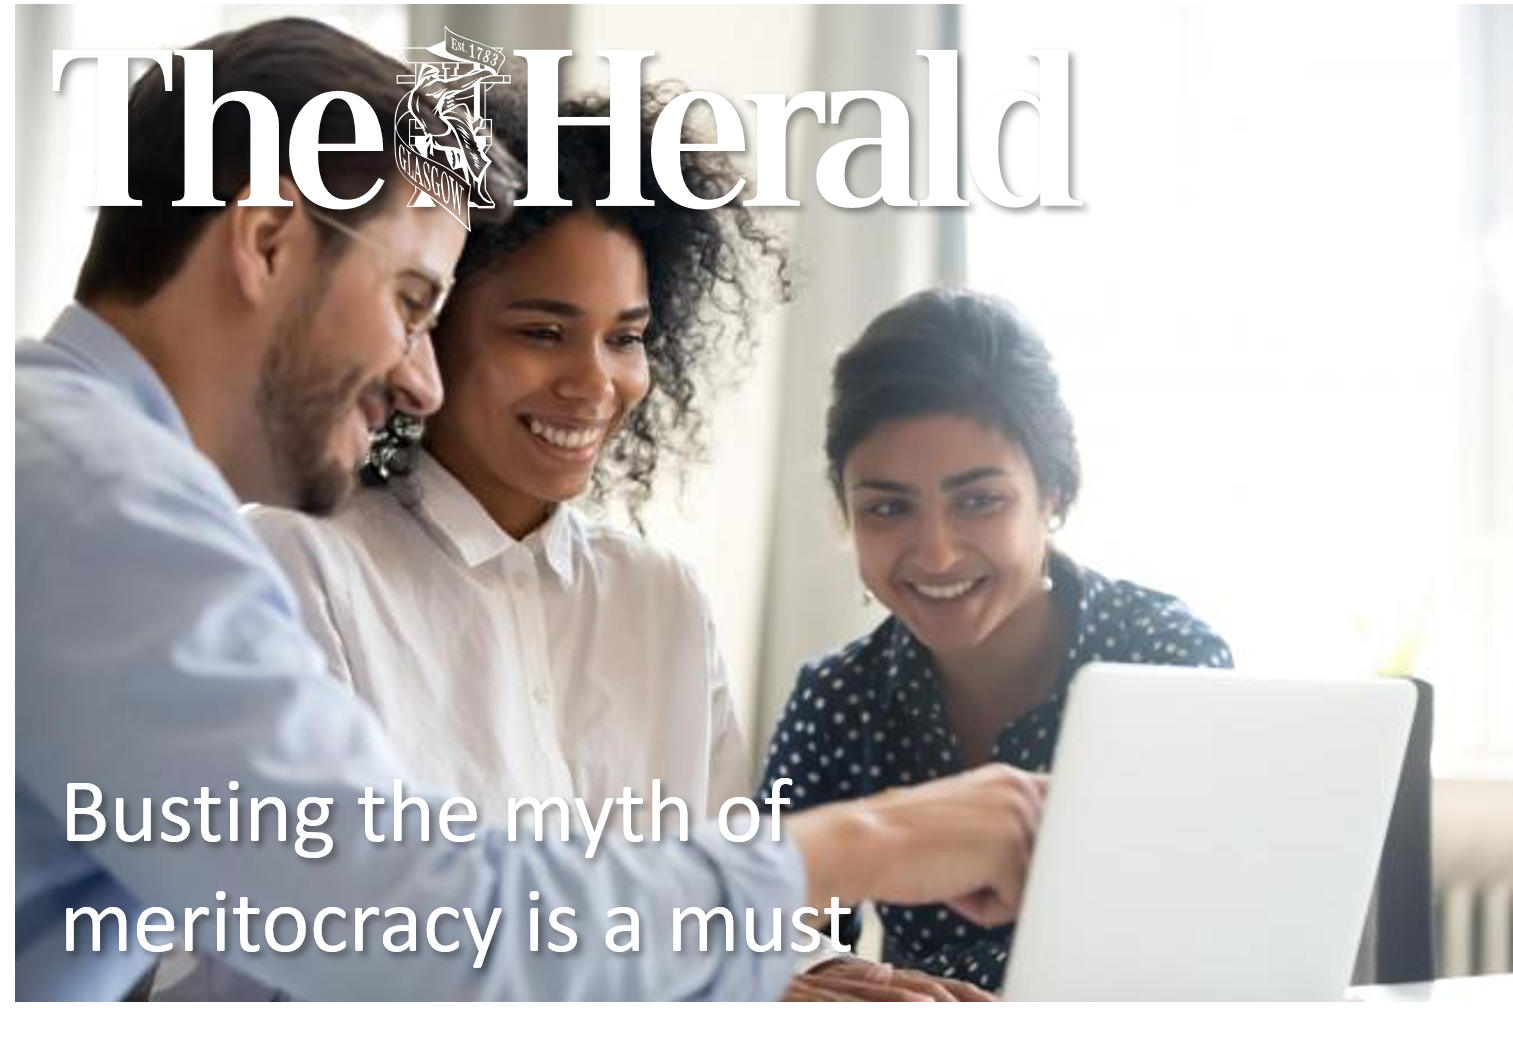 Busting the myth of meritocracy is a must